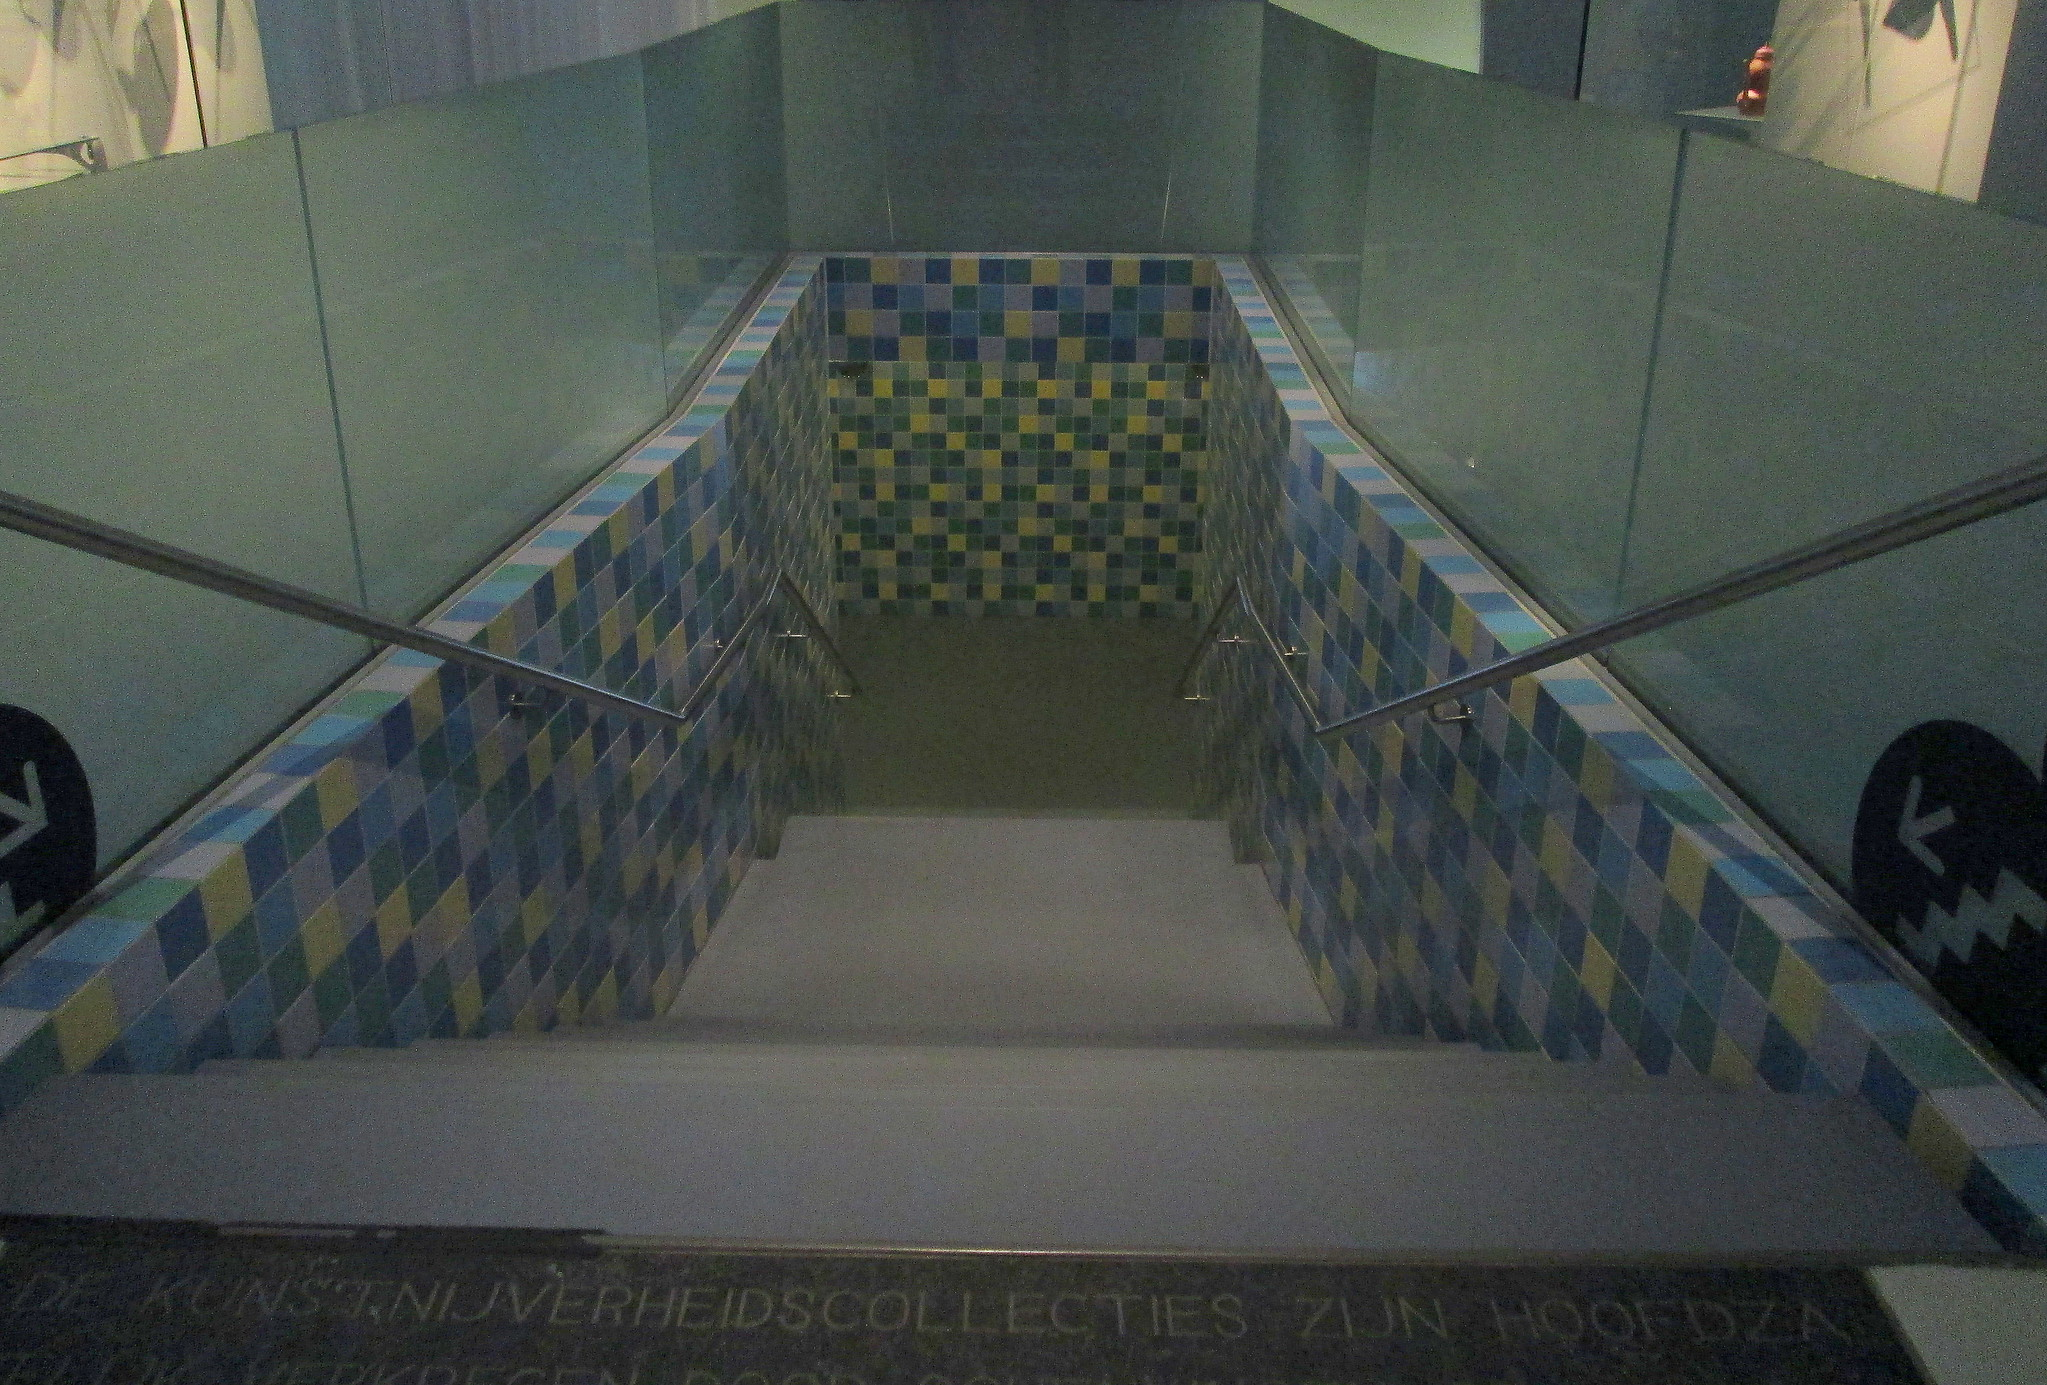 Groningen Museum Staircase 4